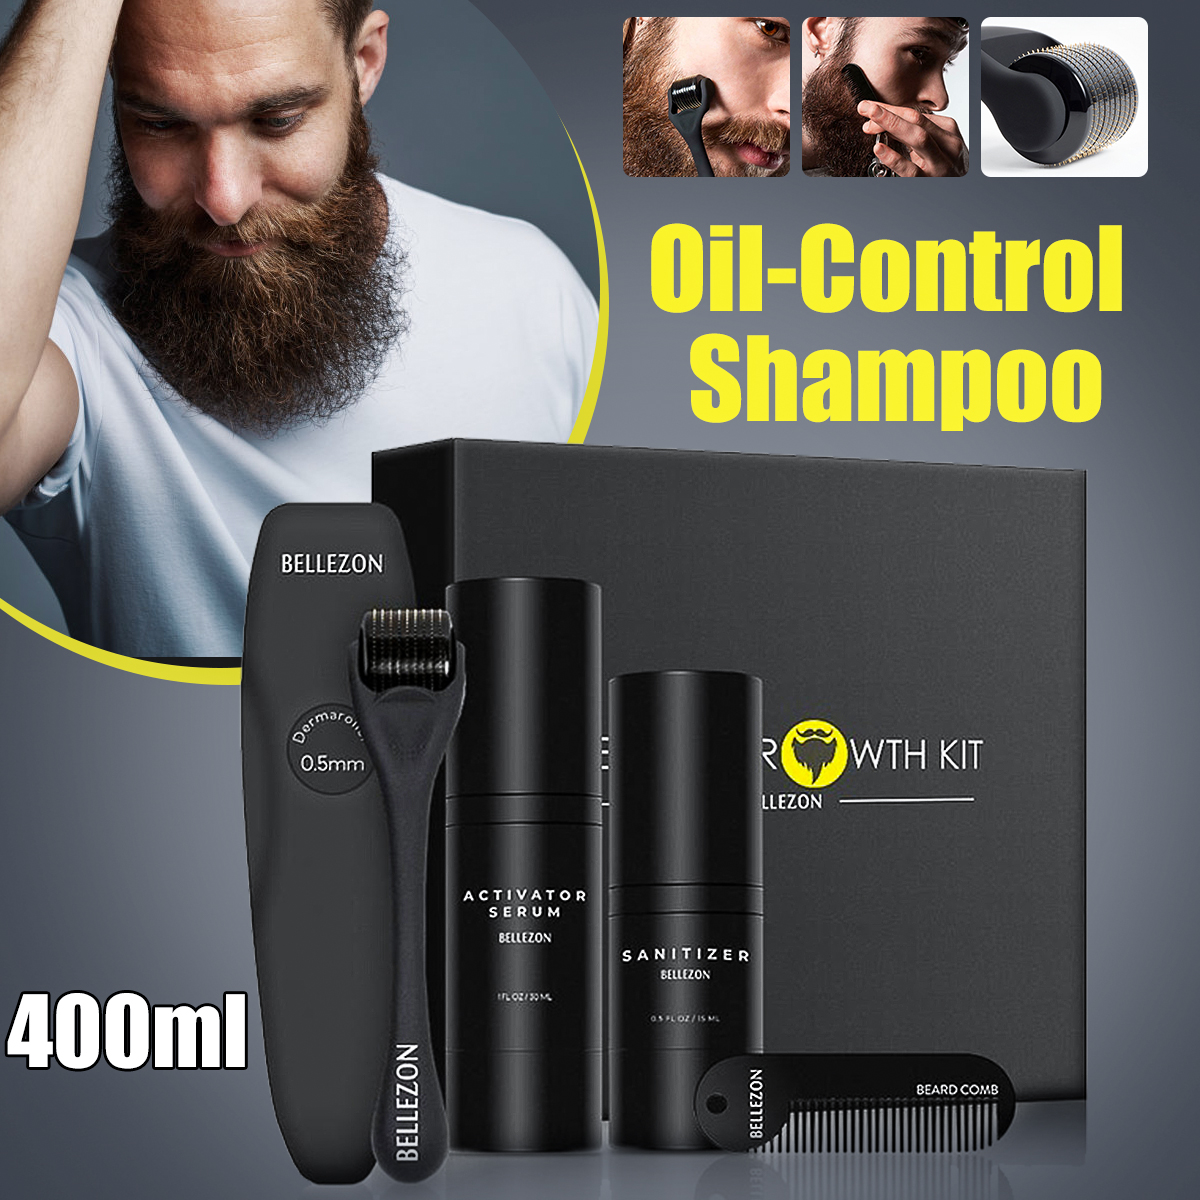 4 teile/satz Männer Bart Wachstum Kit Haar Wachstum Enhancer Dicker Öl Pflegende Leave-in Conditioner Bart Wachsen Set mit kamm image